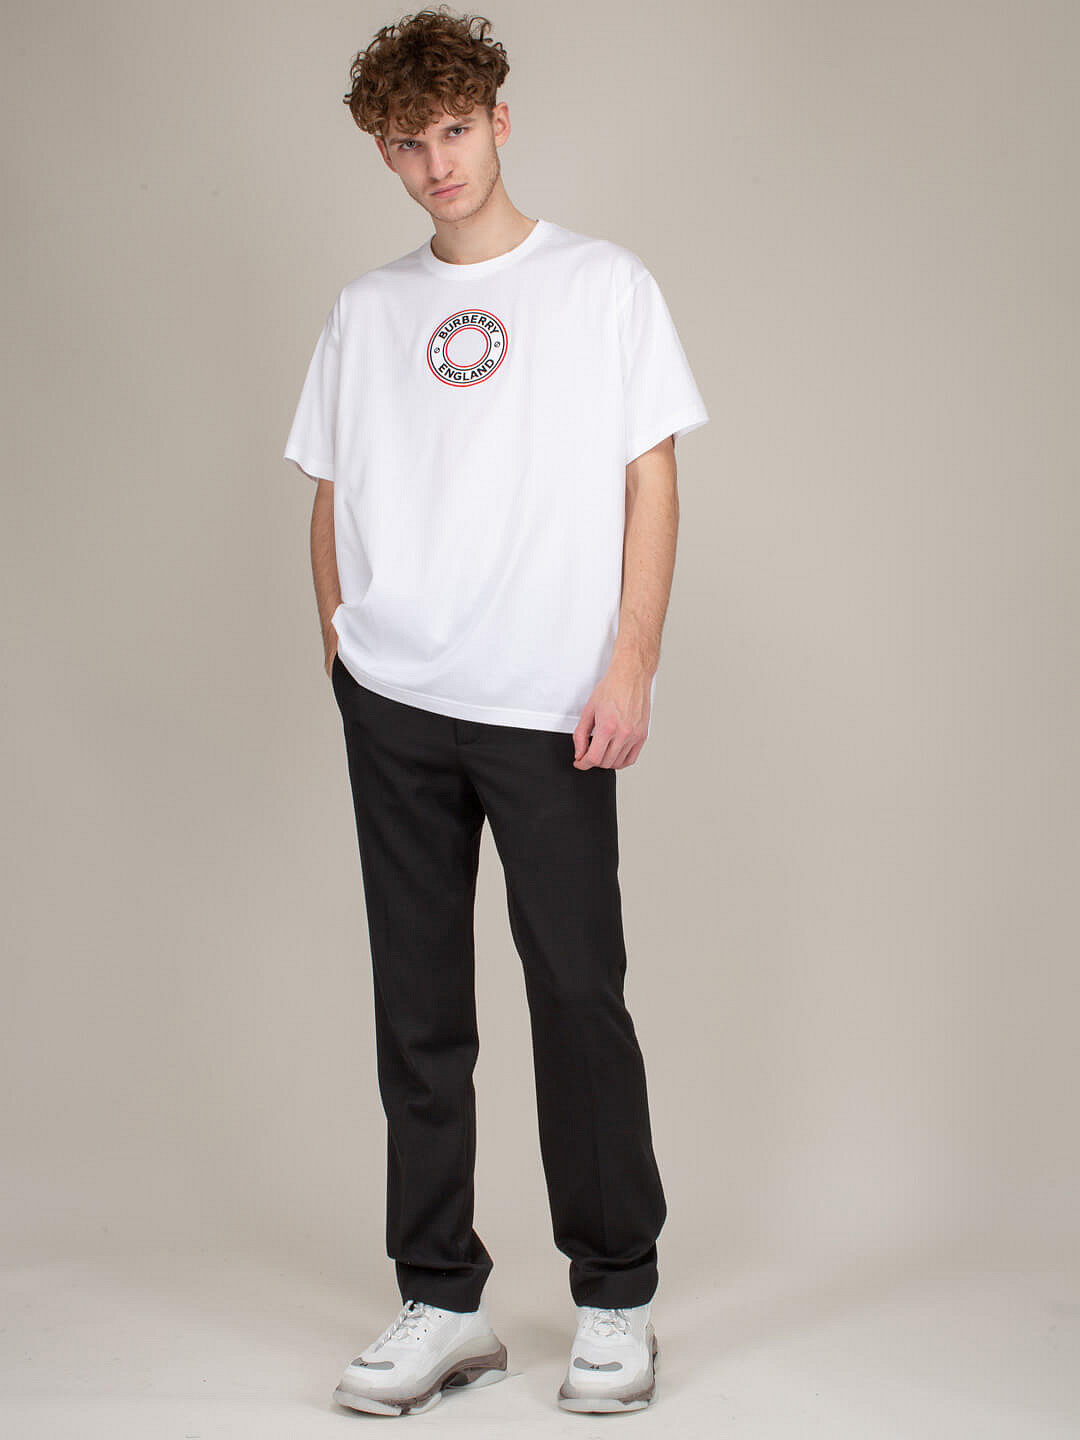 Archway Tee white